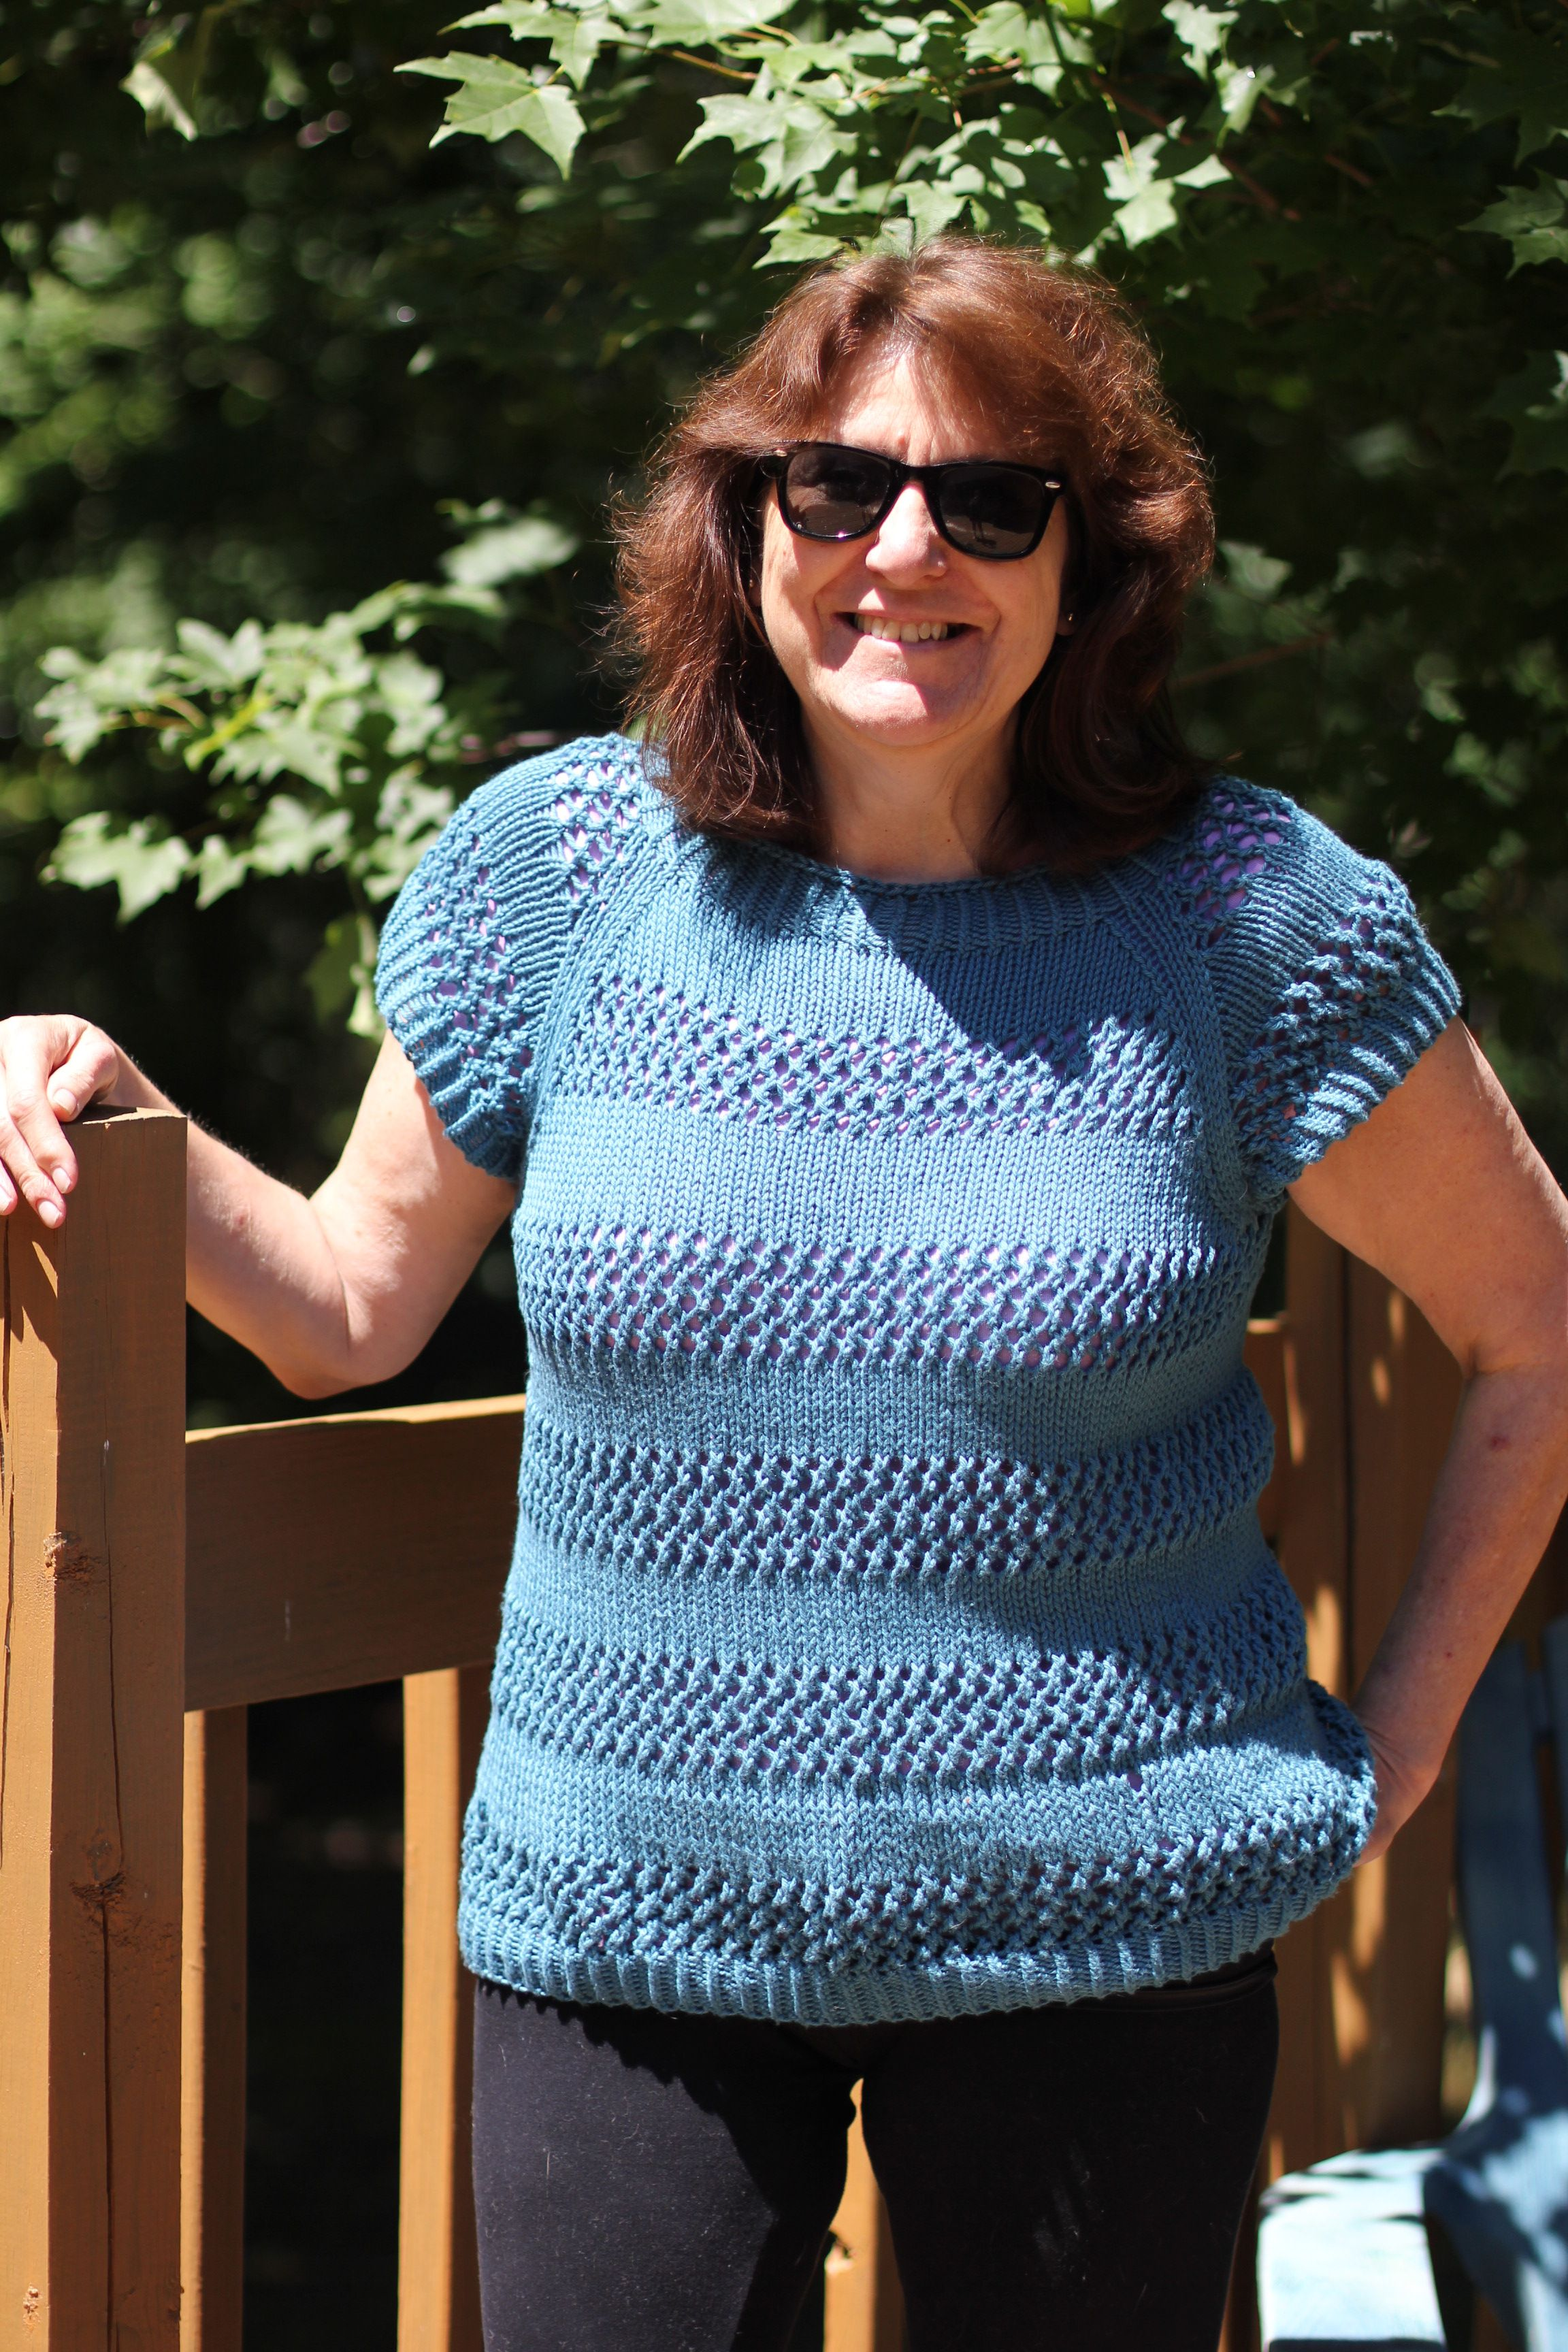 WORK+SHELTER Lace Striped Summer Sweater knitting pattern in Knit ...